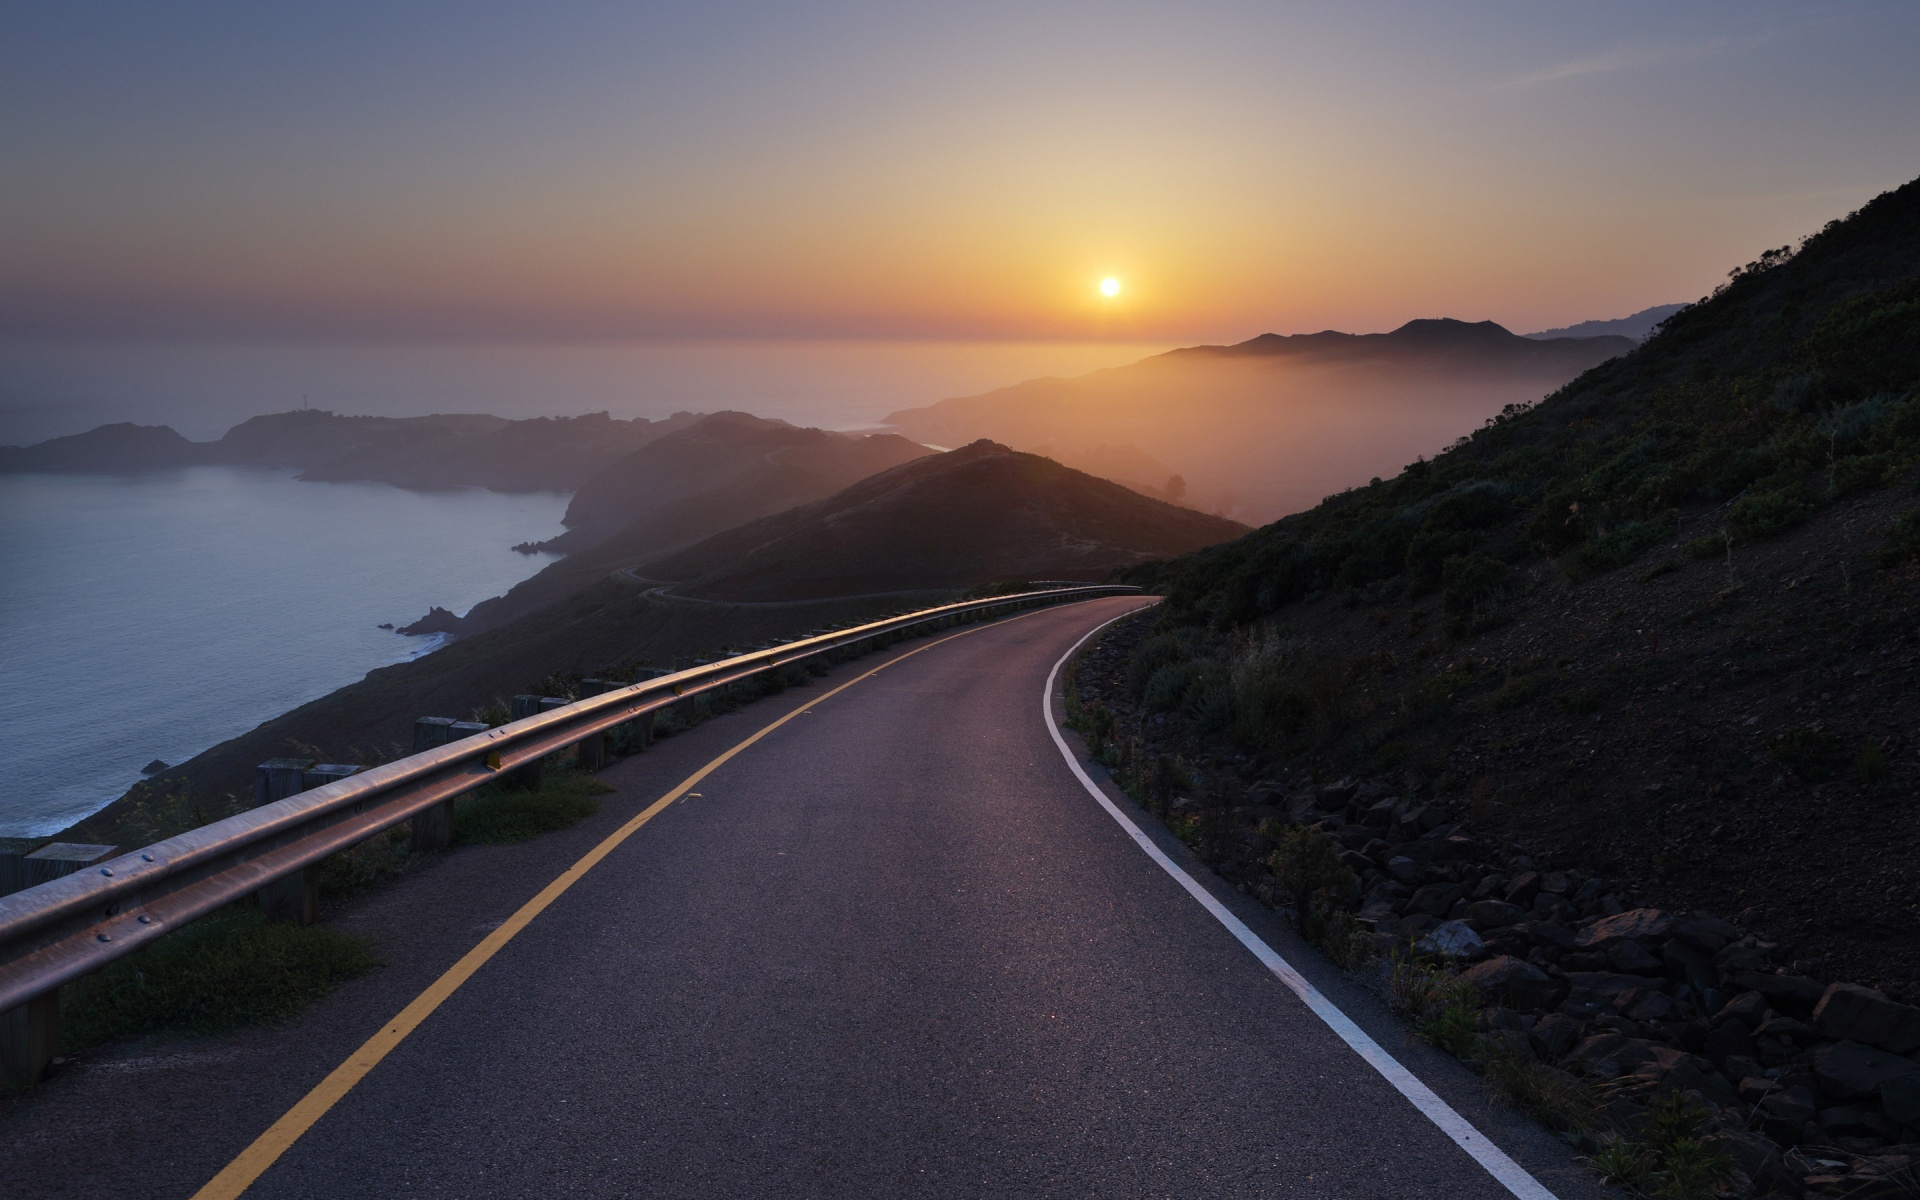 Road Sunset Wallpaper Hills Stones Road Ocea...